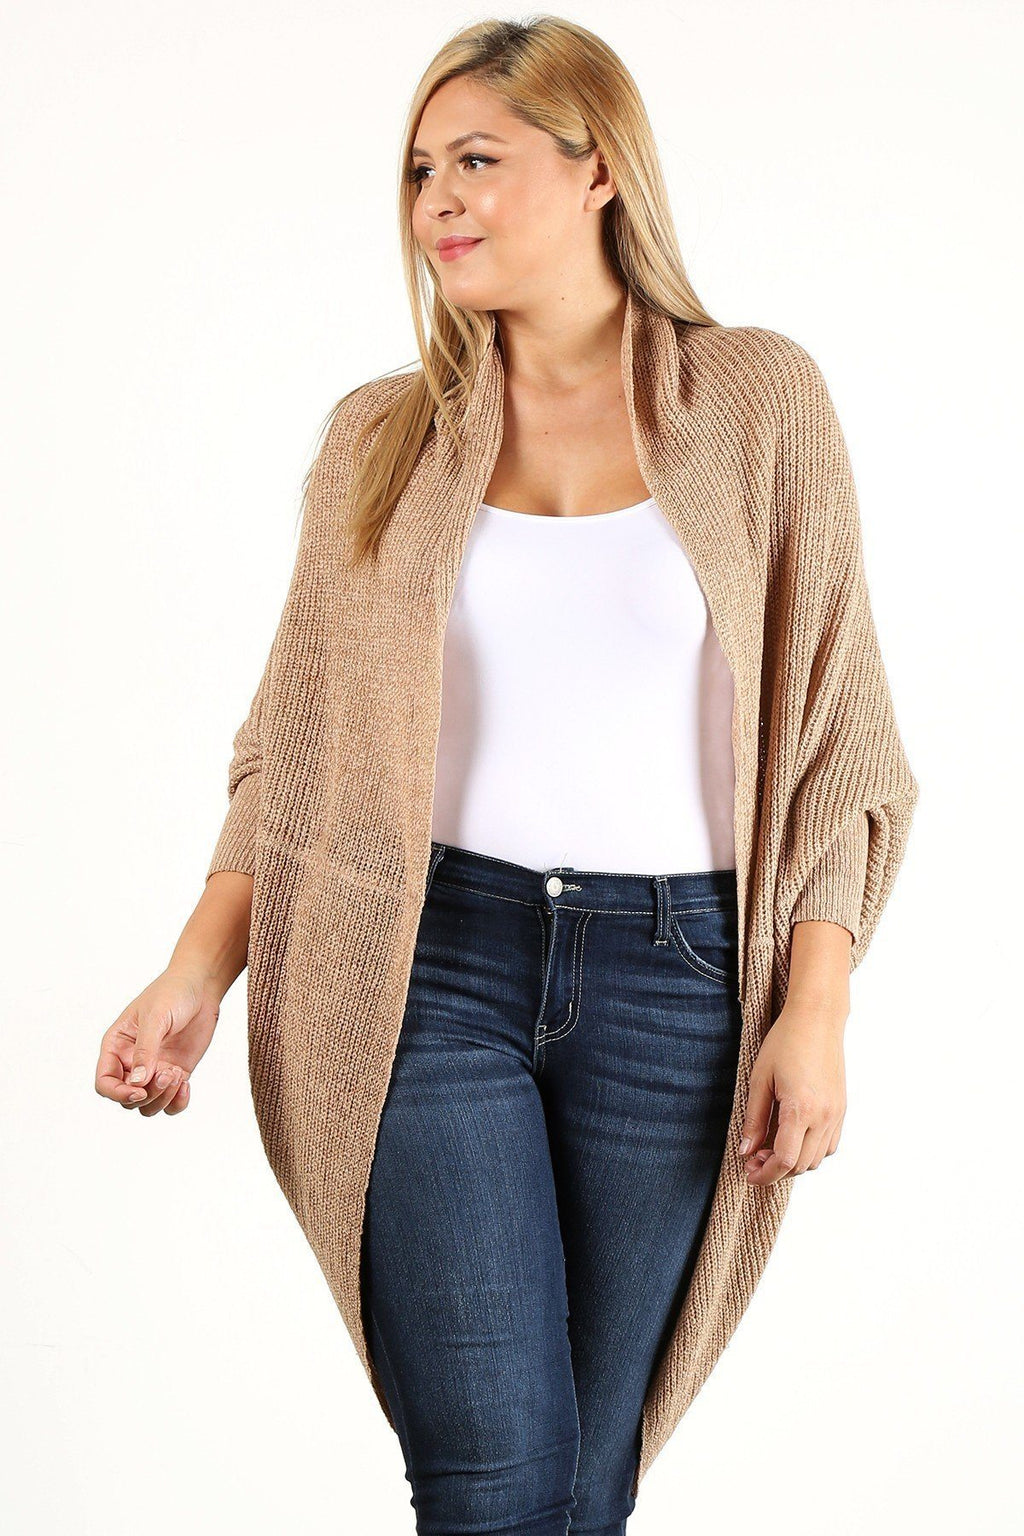 1XL/2XL Solid Loose Knit, Open Cocoon Cardigan